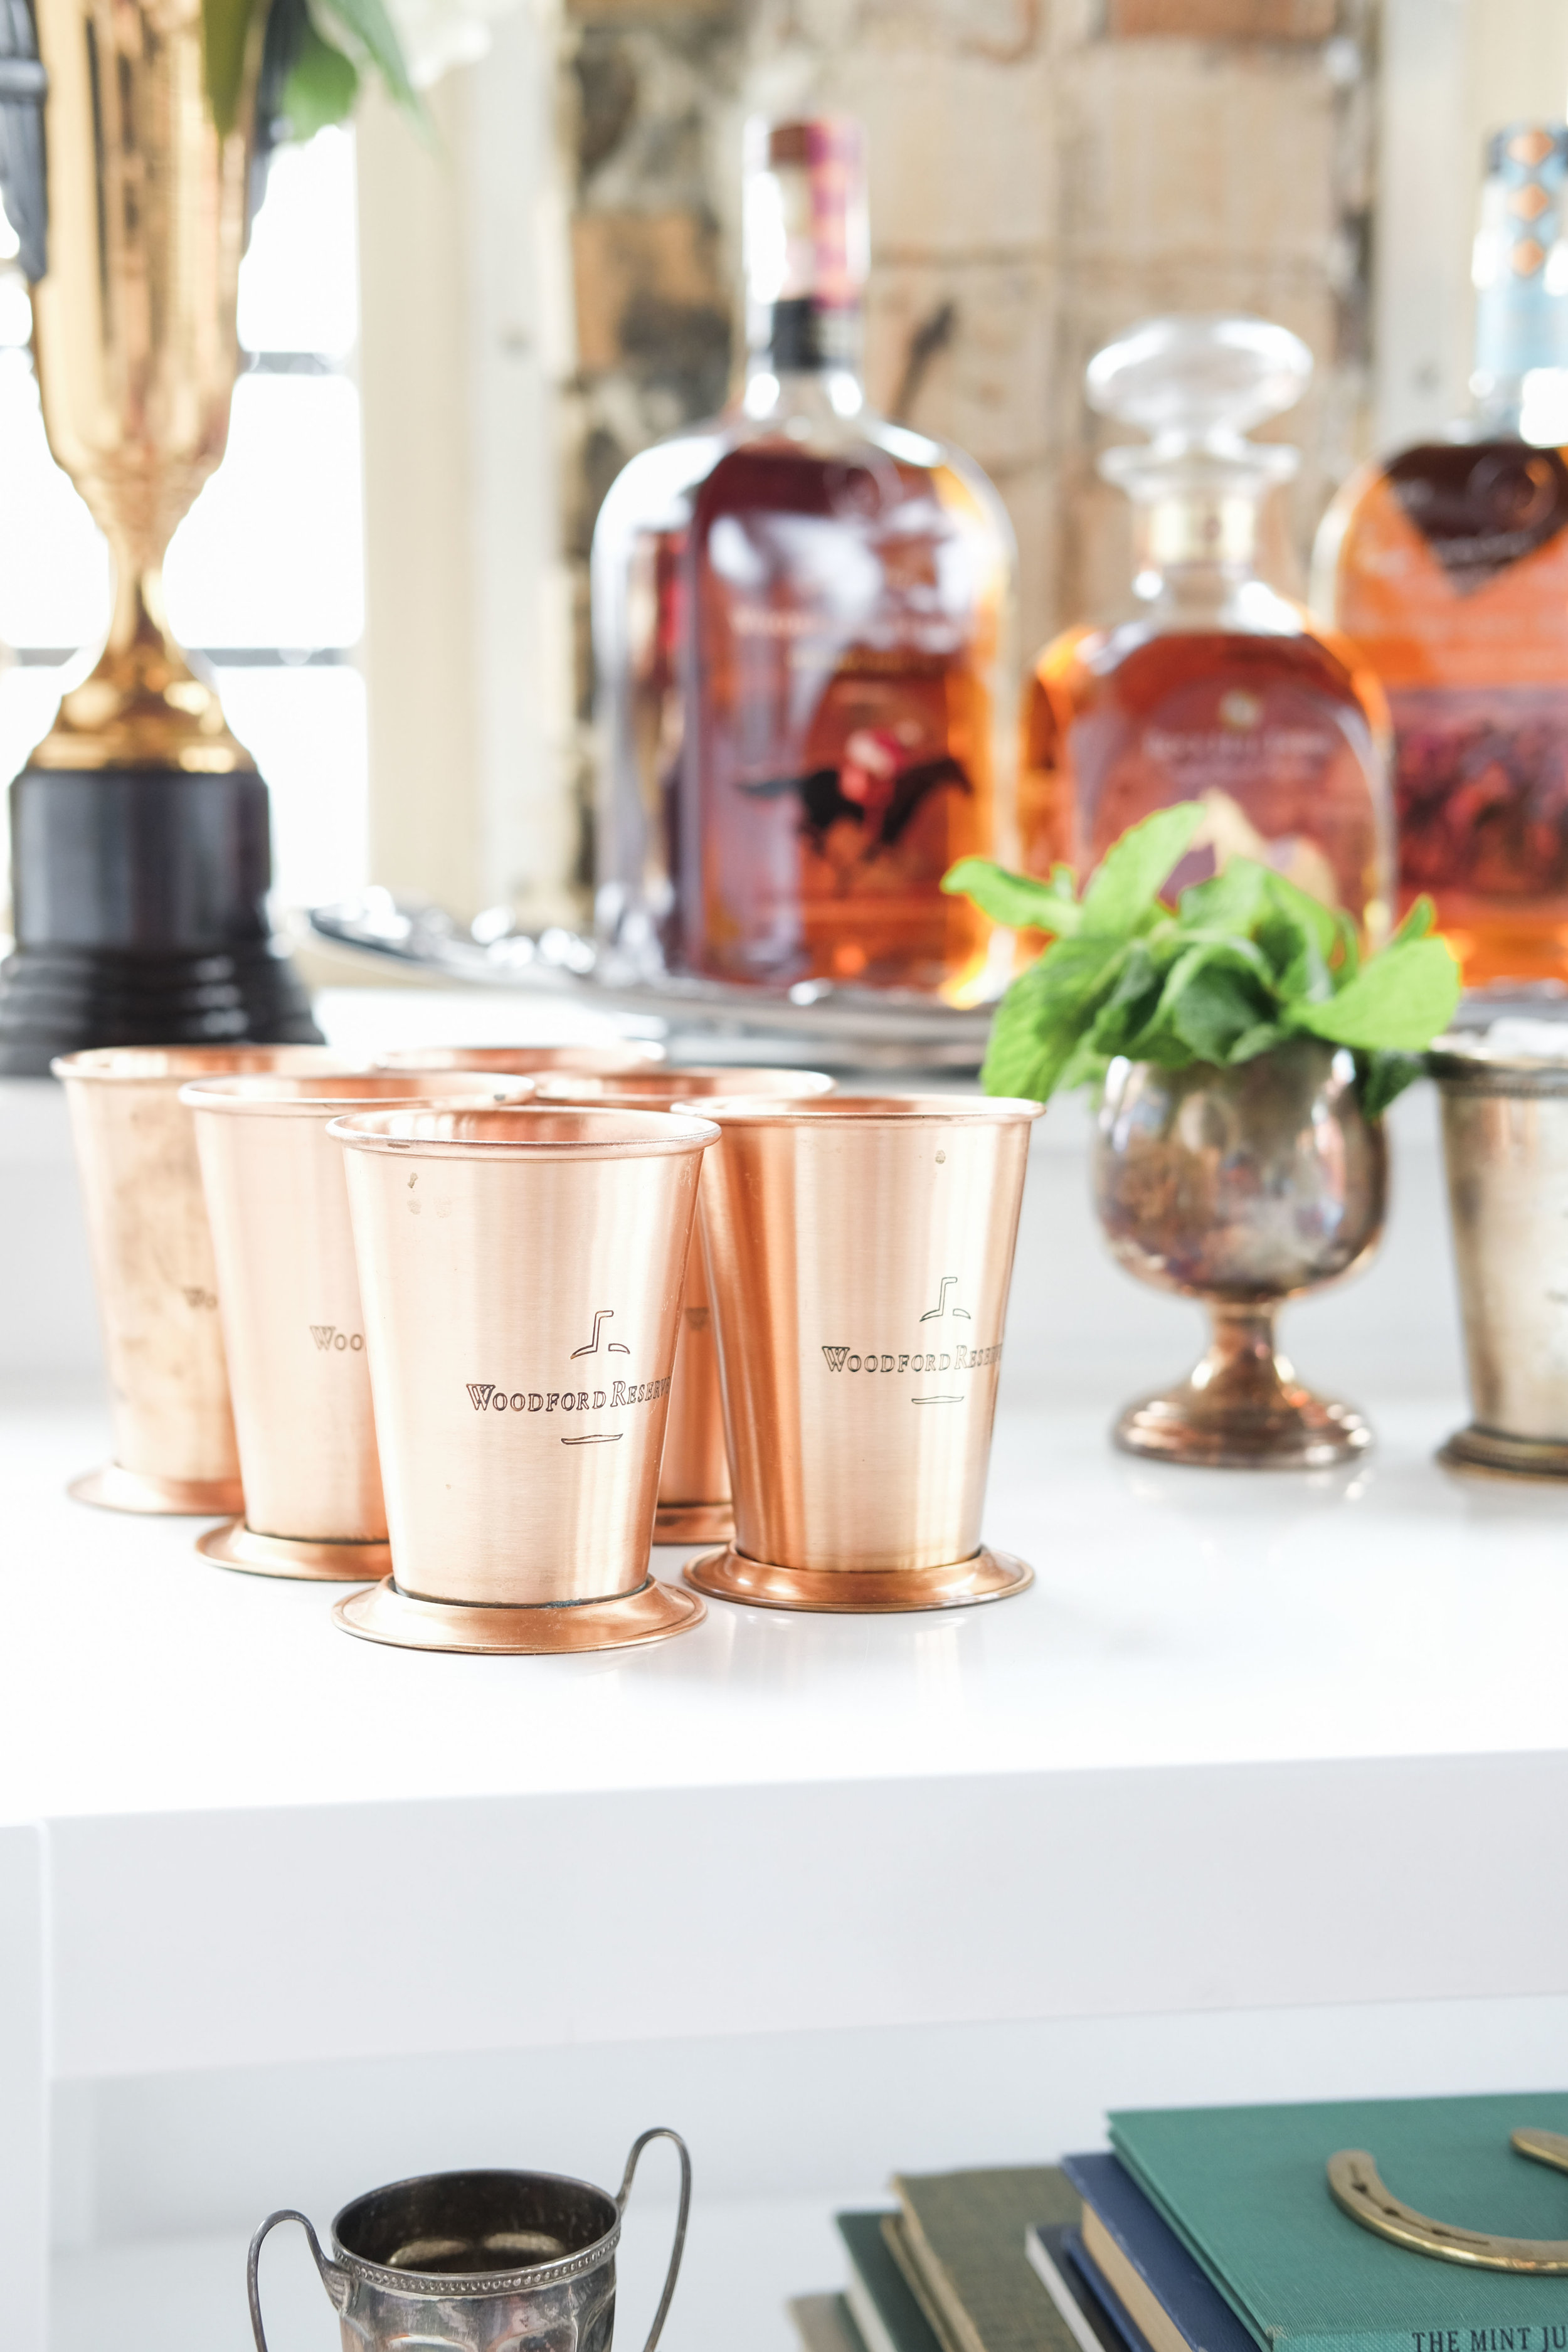 Kentucky Derby Party inspiration.  Mint Julep bar cart.  Trophy cup vase, Woodford Reserve bourbon, vintage Kentucky Derby books, equestrian home decor.